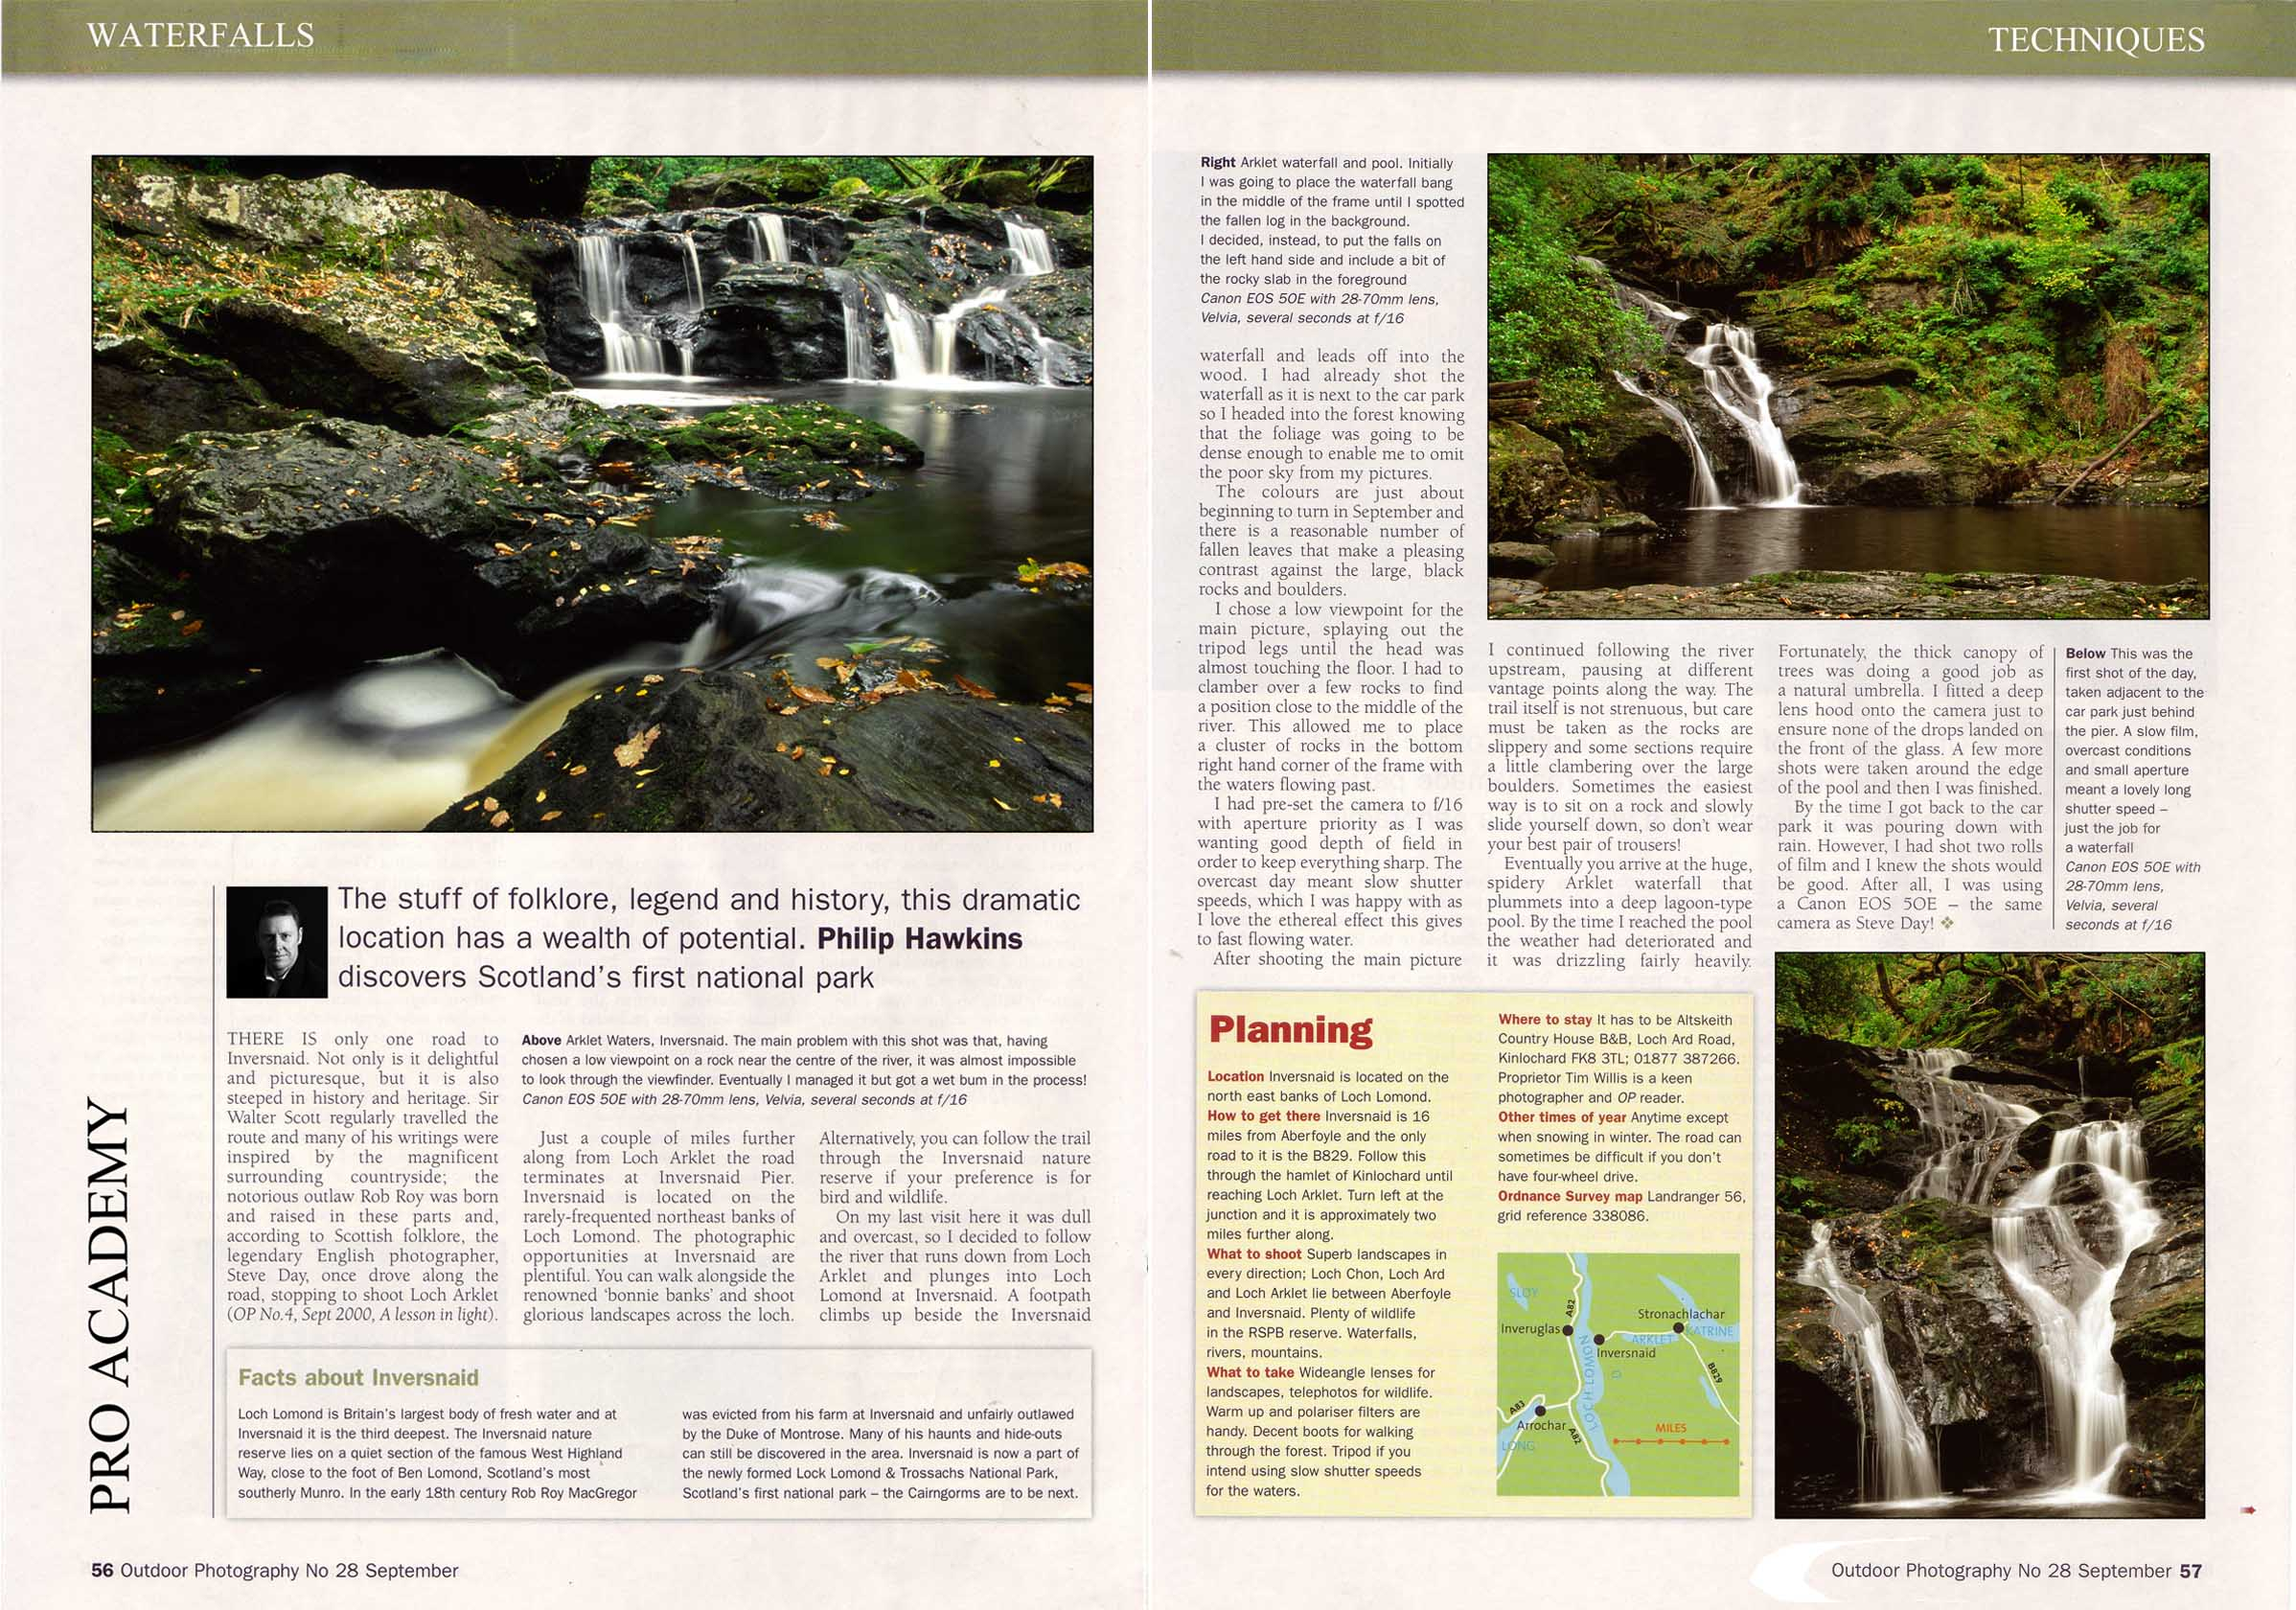 Photography techniques magazine article by Philip Hawkins